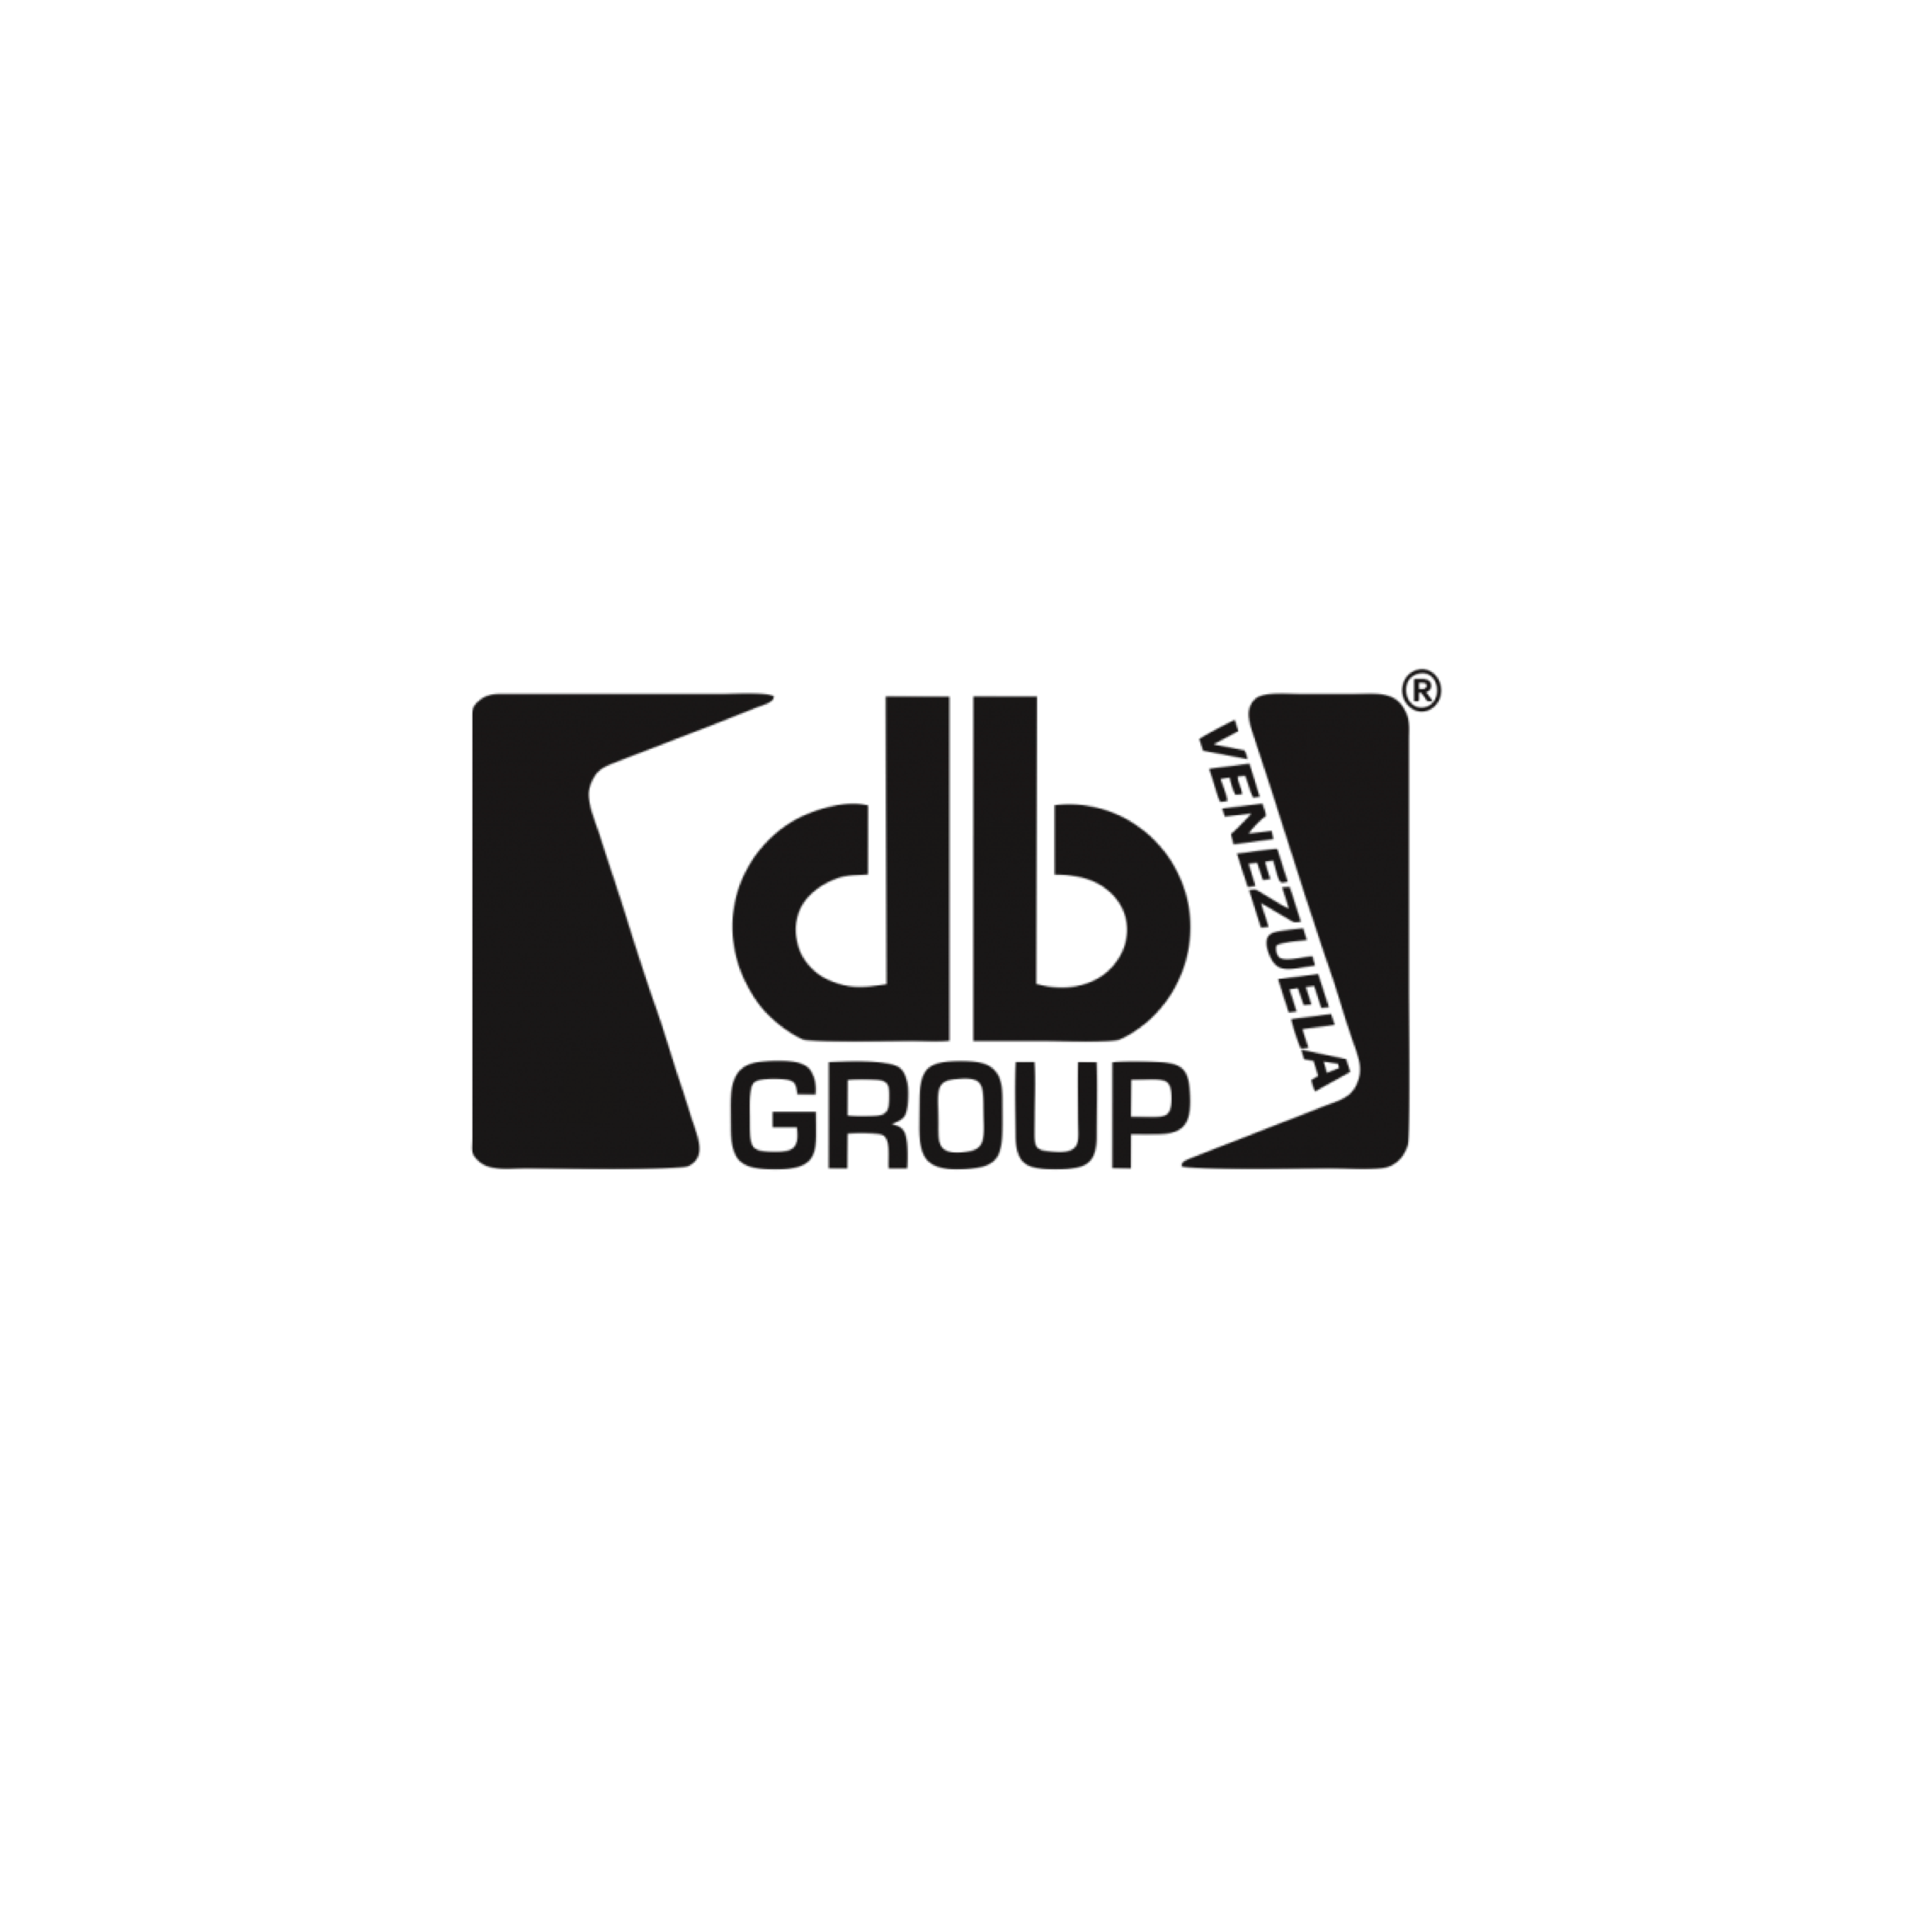 Organizador DB Group Venezuela